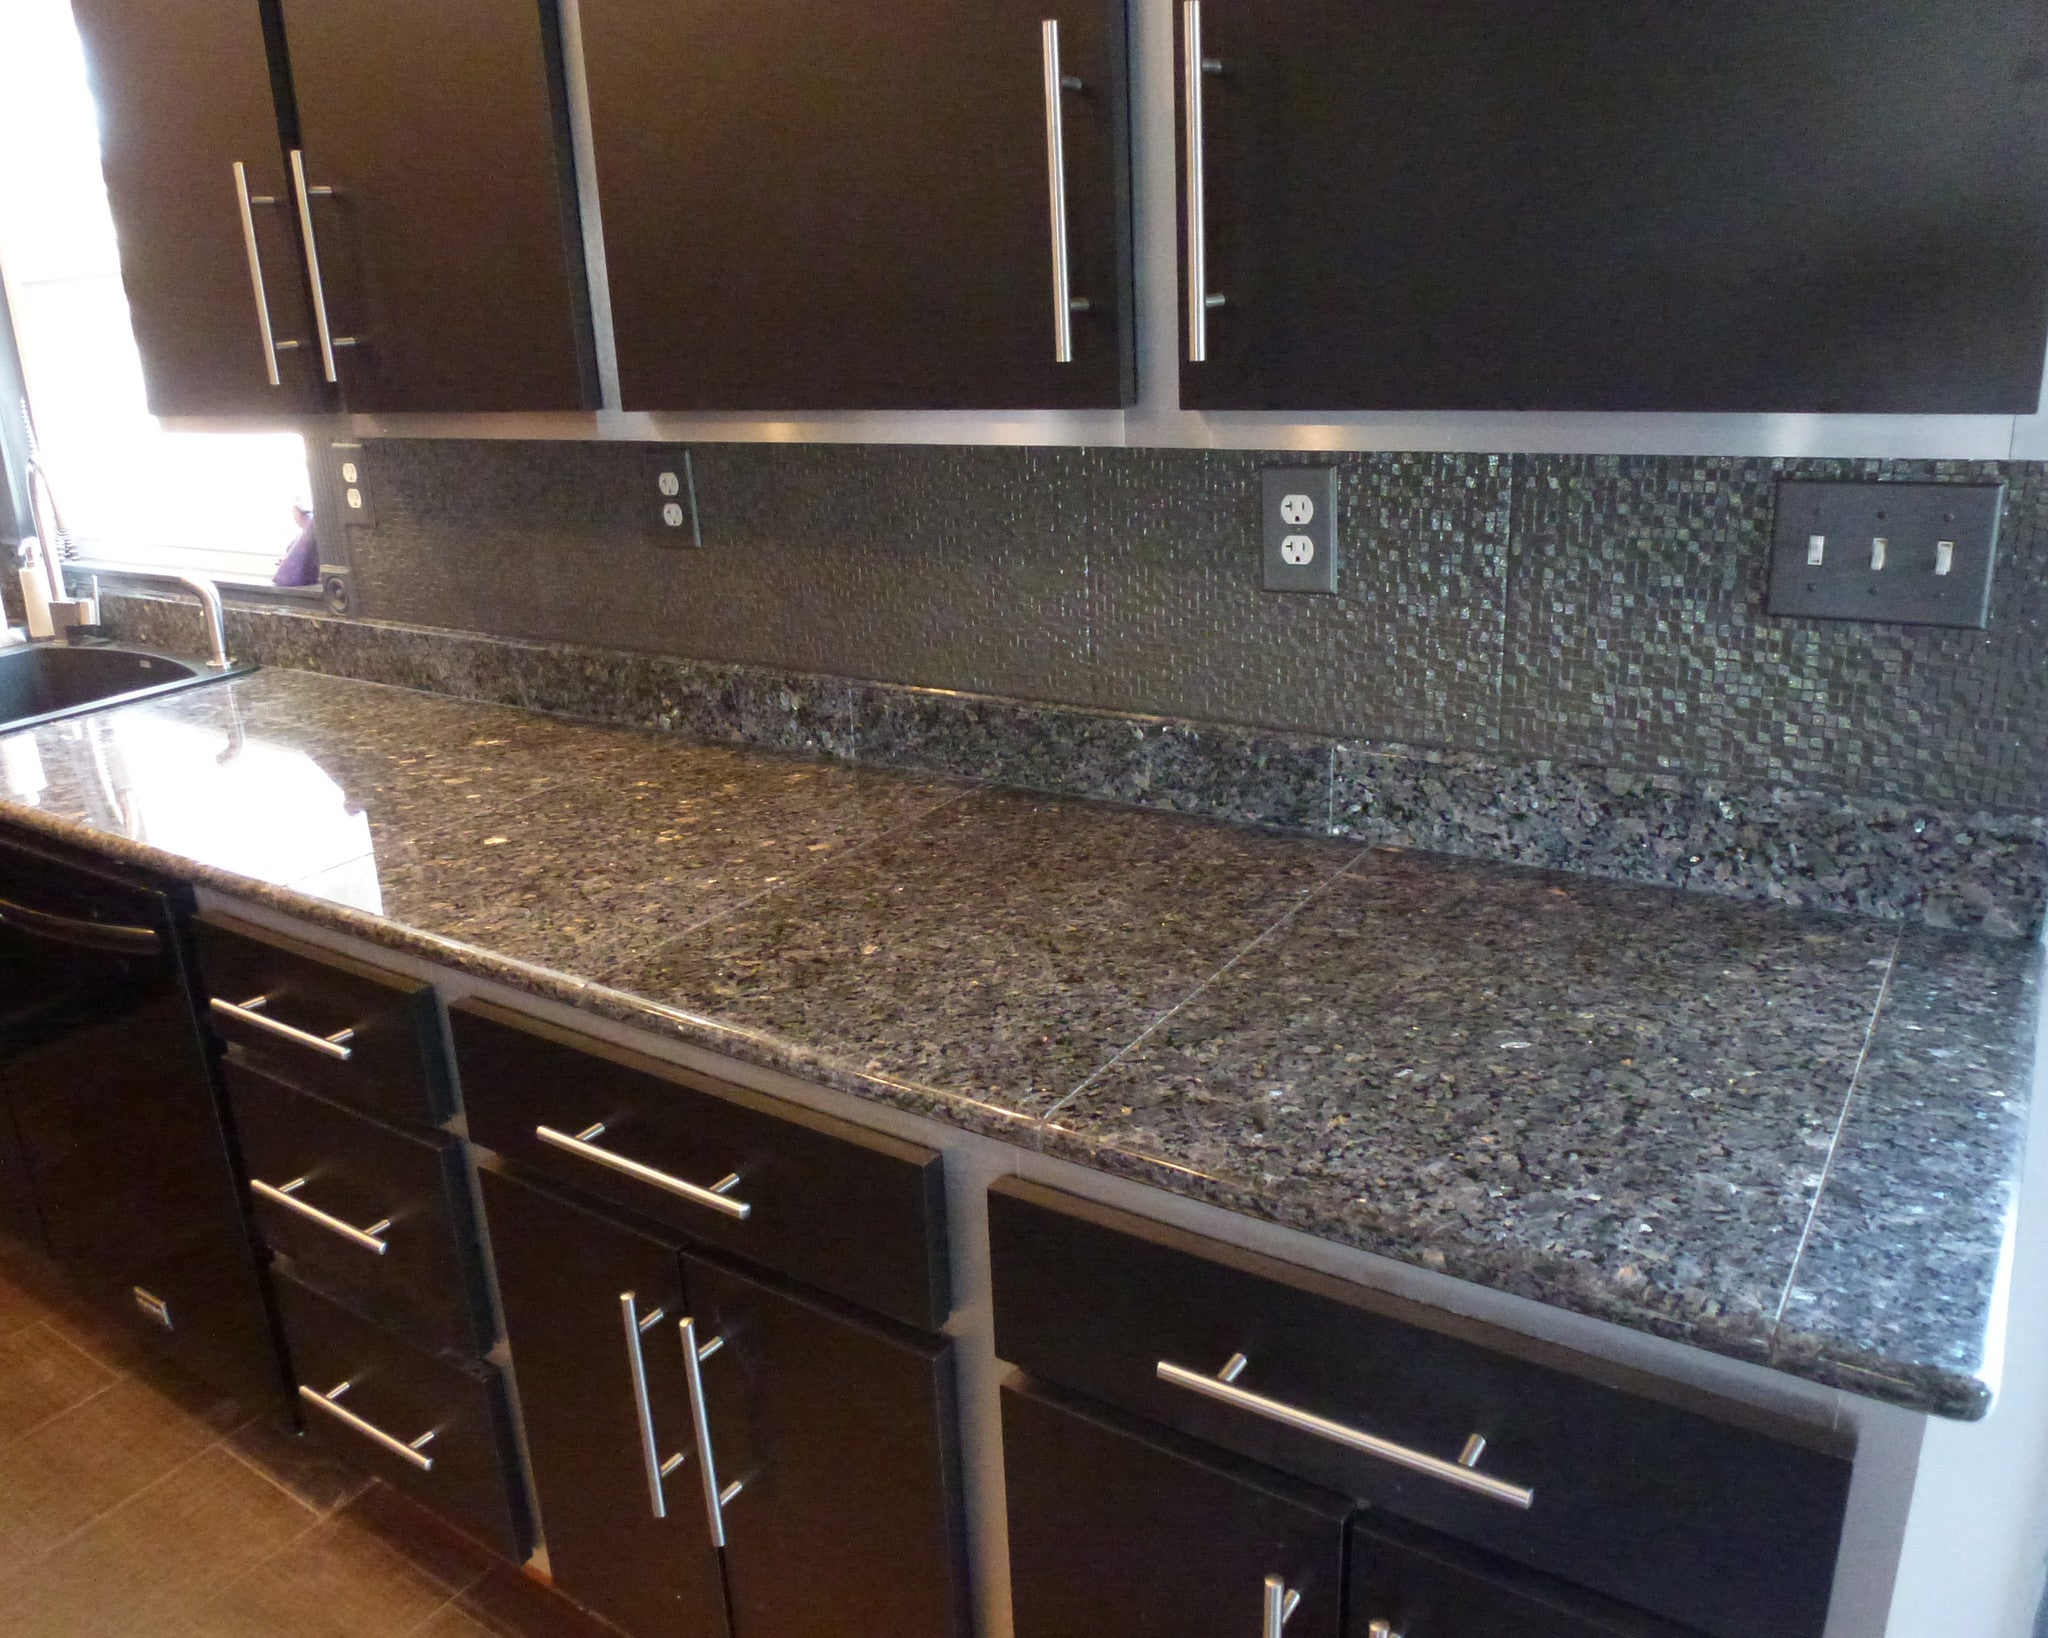 Blue Pearl Prefab Granite Countertop Cearance Item The Home Expo